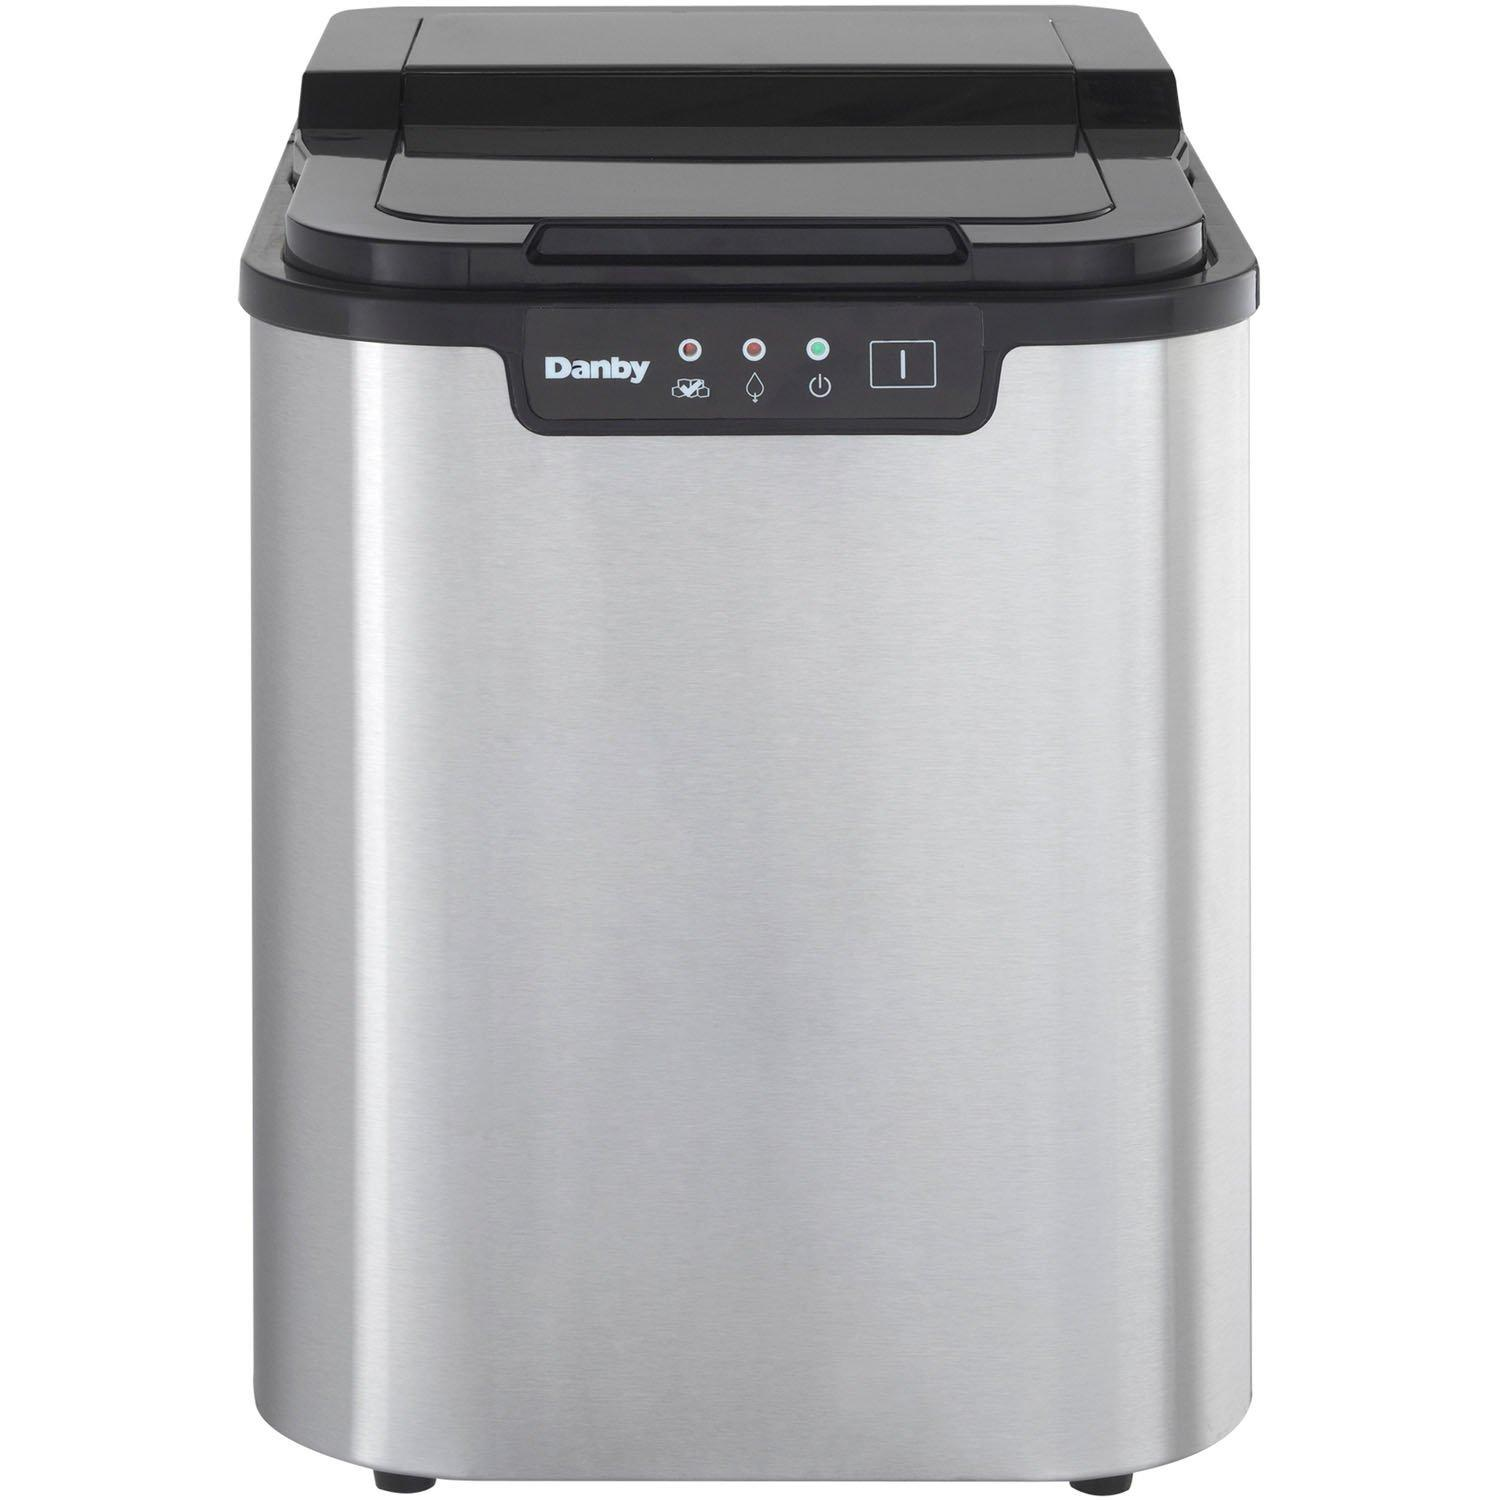 Danby Countertop Ice Maker Stainless Steel : DIM2500SSDB Danby dim2500ssdb Ice Makers Stainless Steel